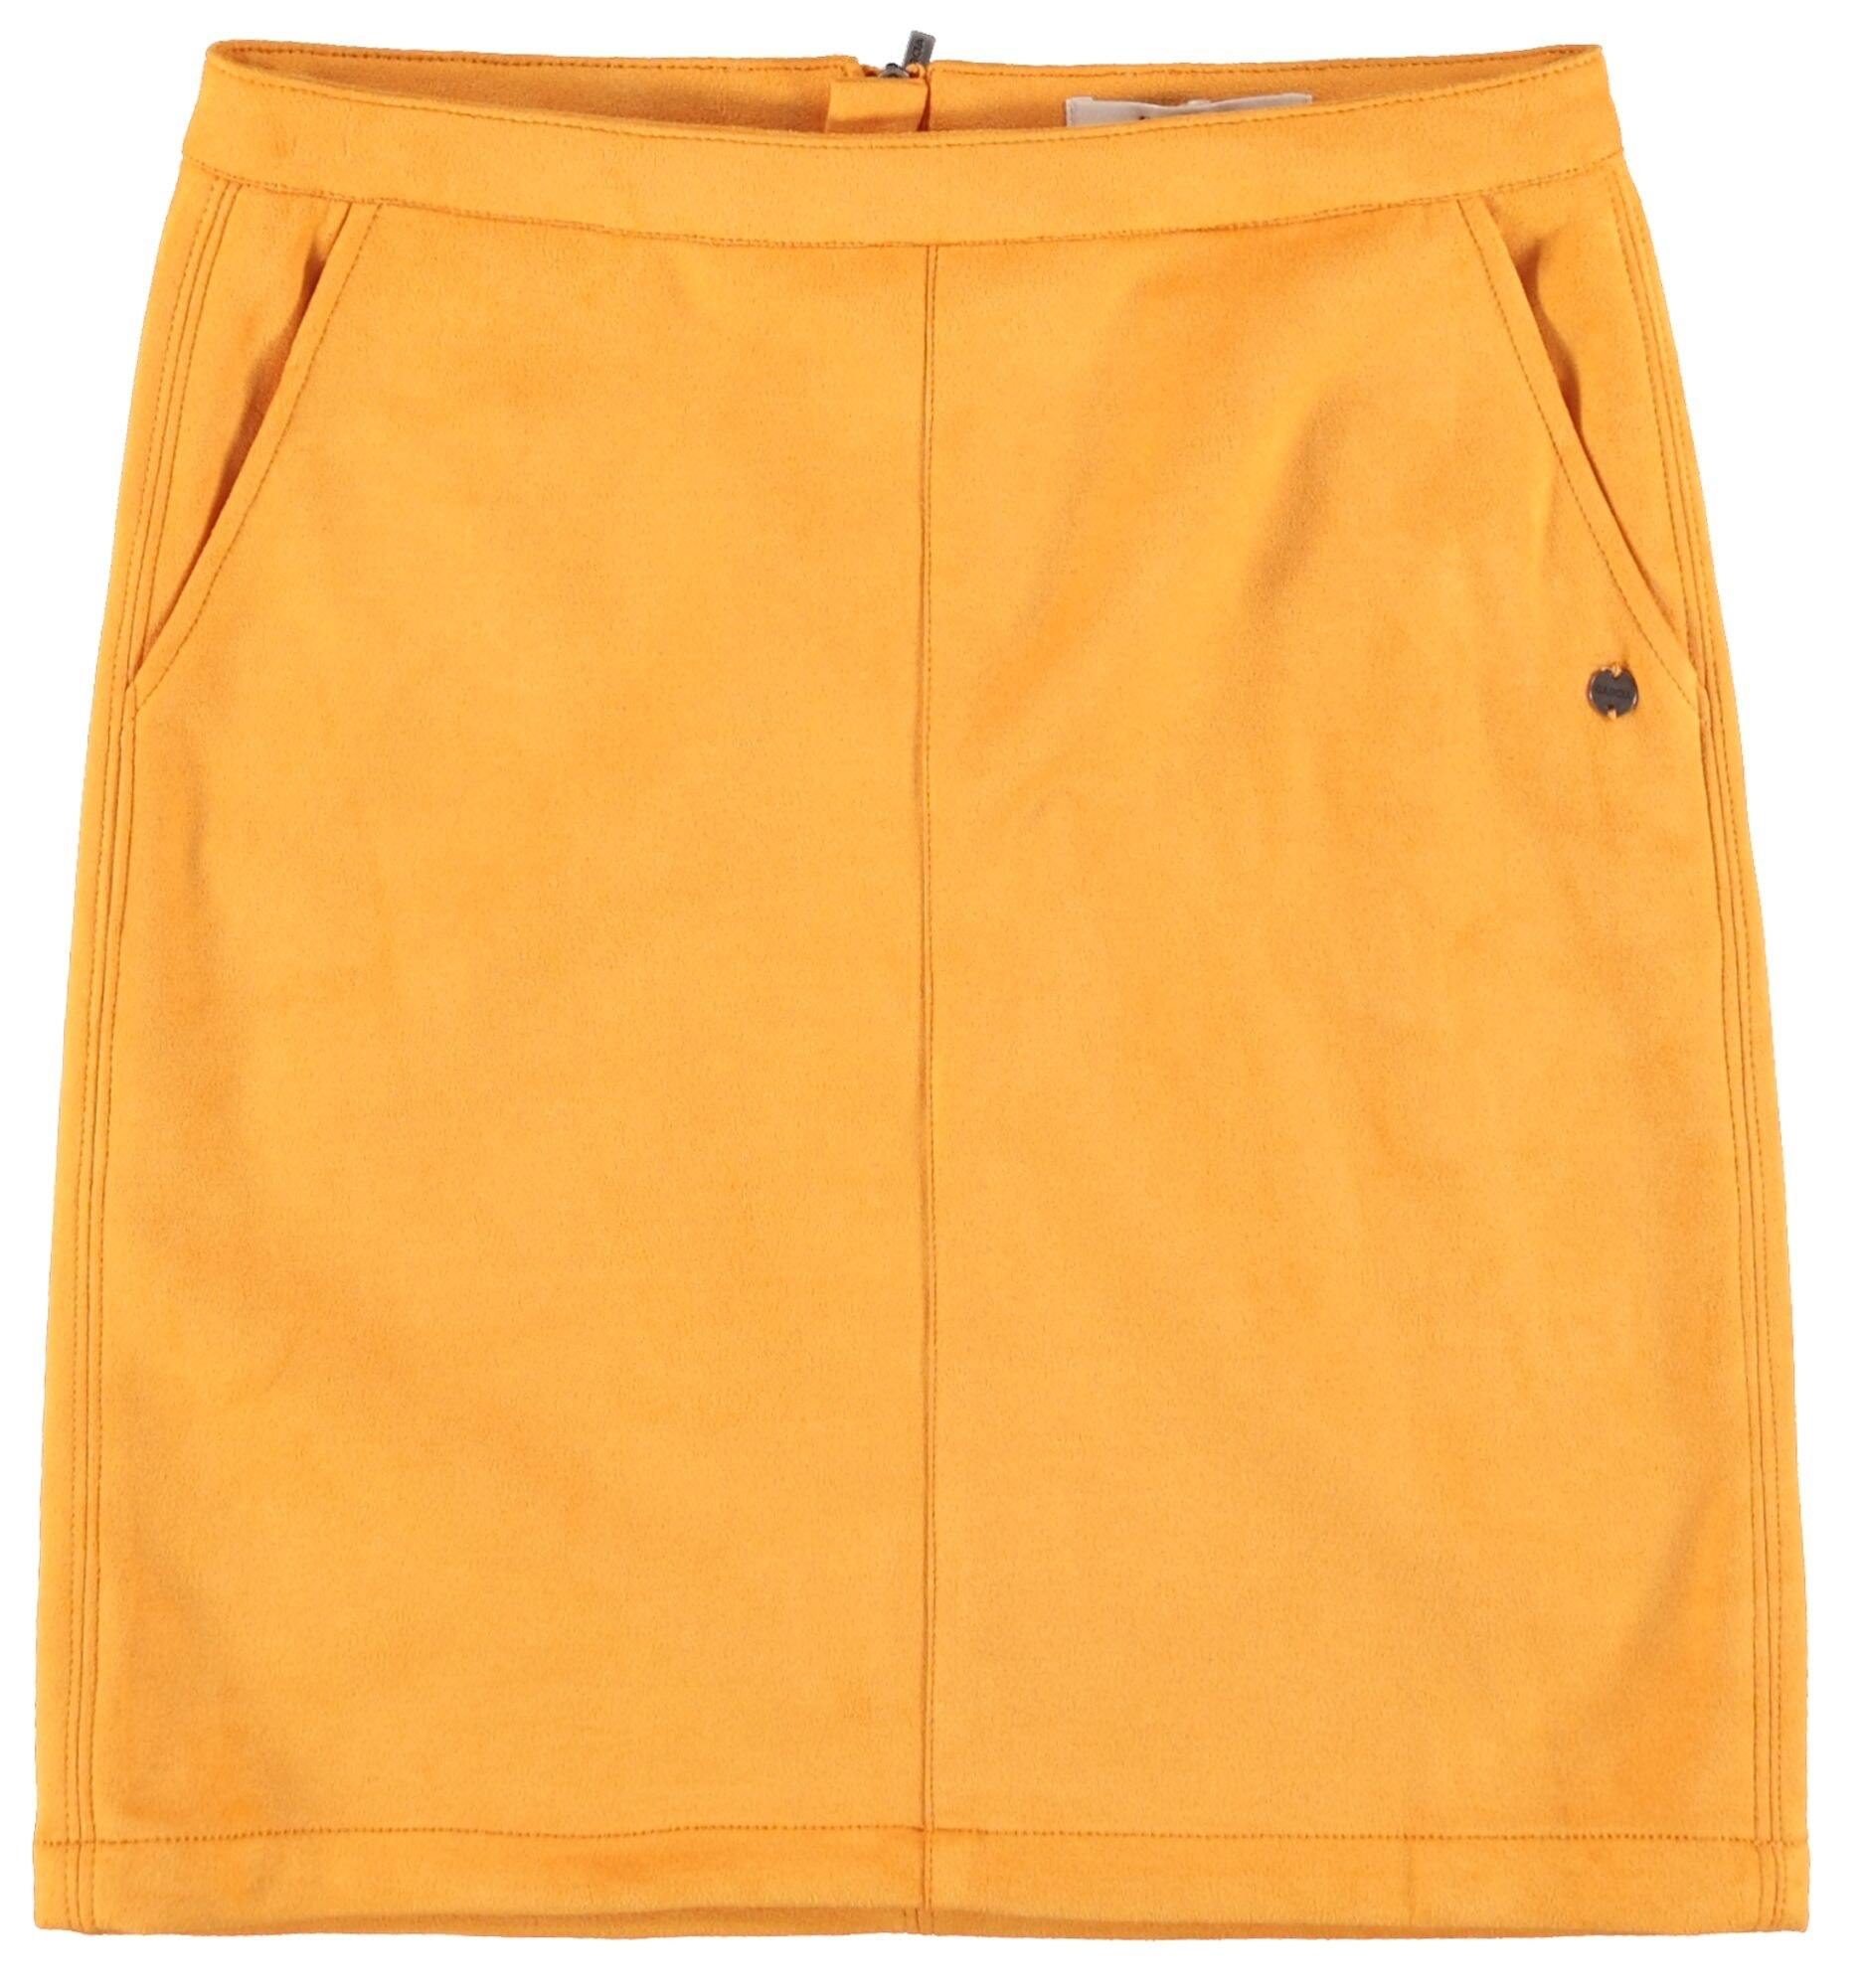 Garcia yellow skirt GS000825